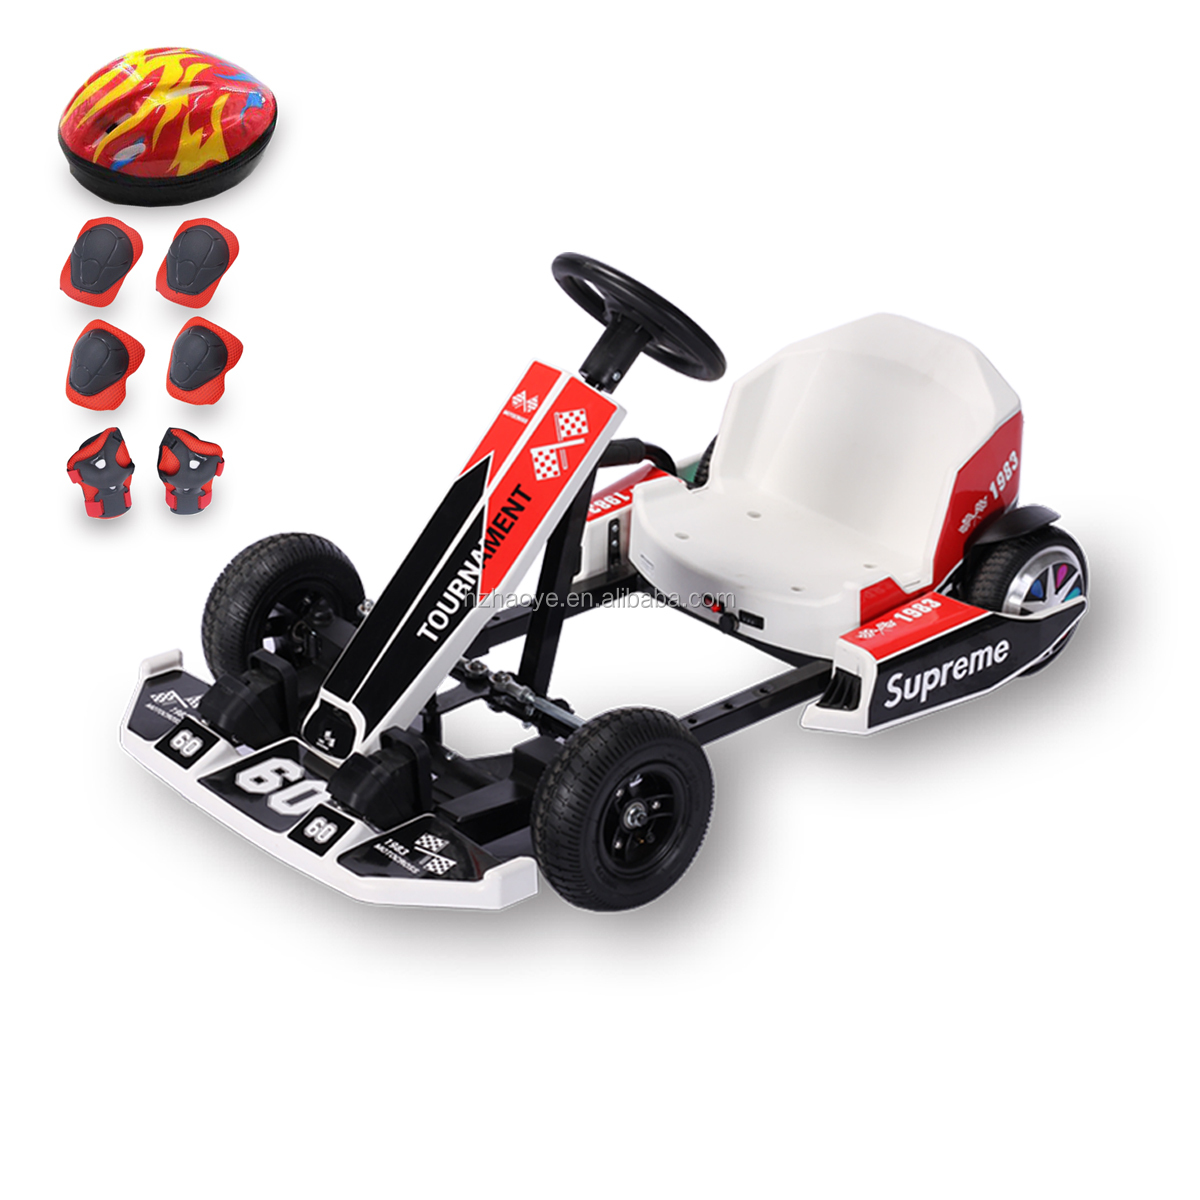 China Kids Street Legal Carreras De Karting Adult Kids Racing Electric Drift Go Kart Cheap For Sale Racing Go Karts Buy Go Karts Go Kart Cheap Go Kart For Sale Product On Alibaba Com